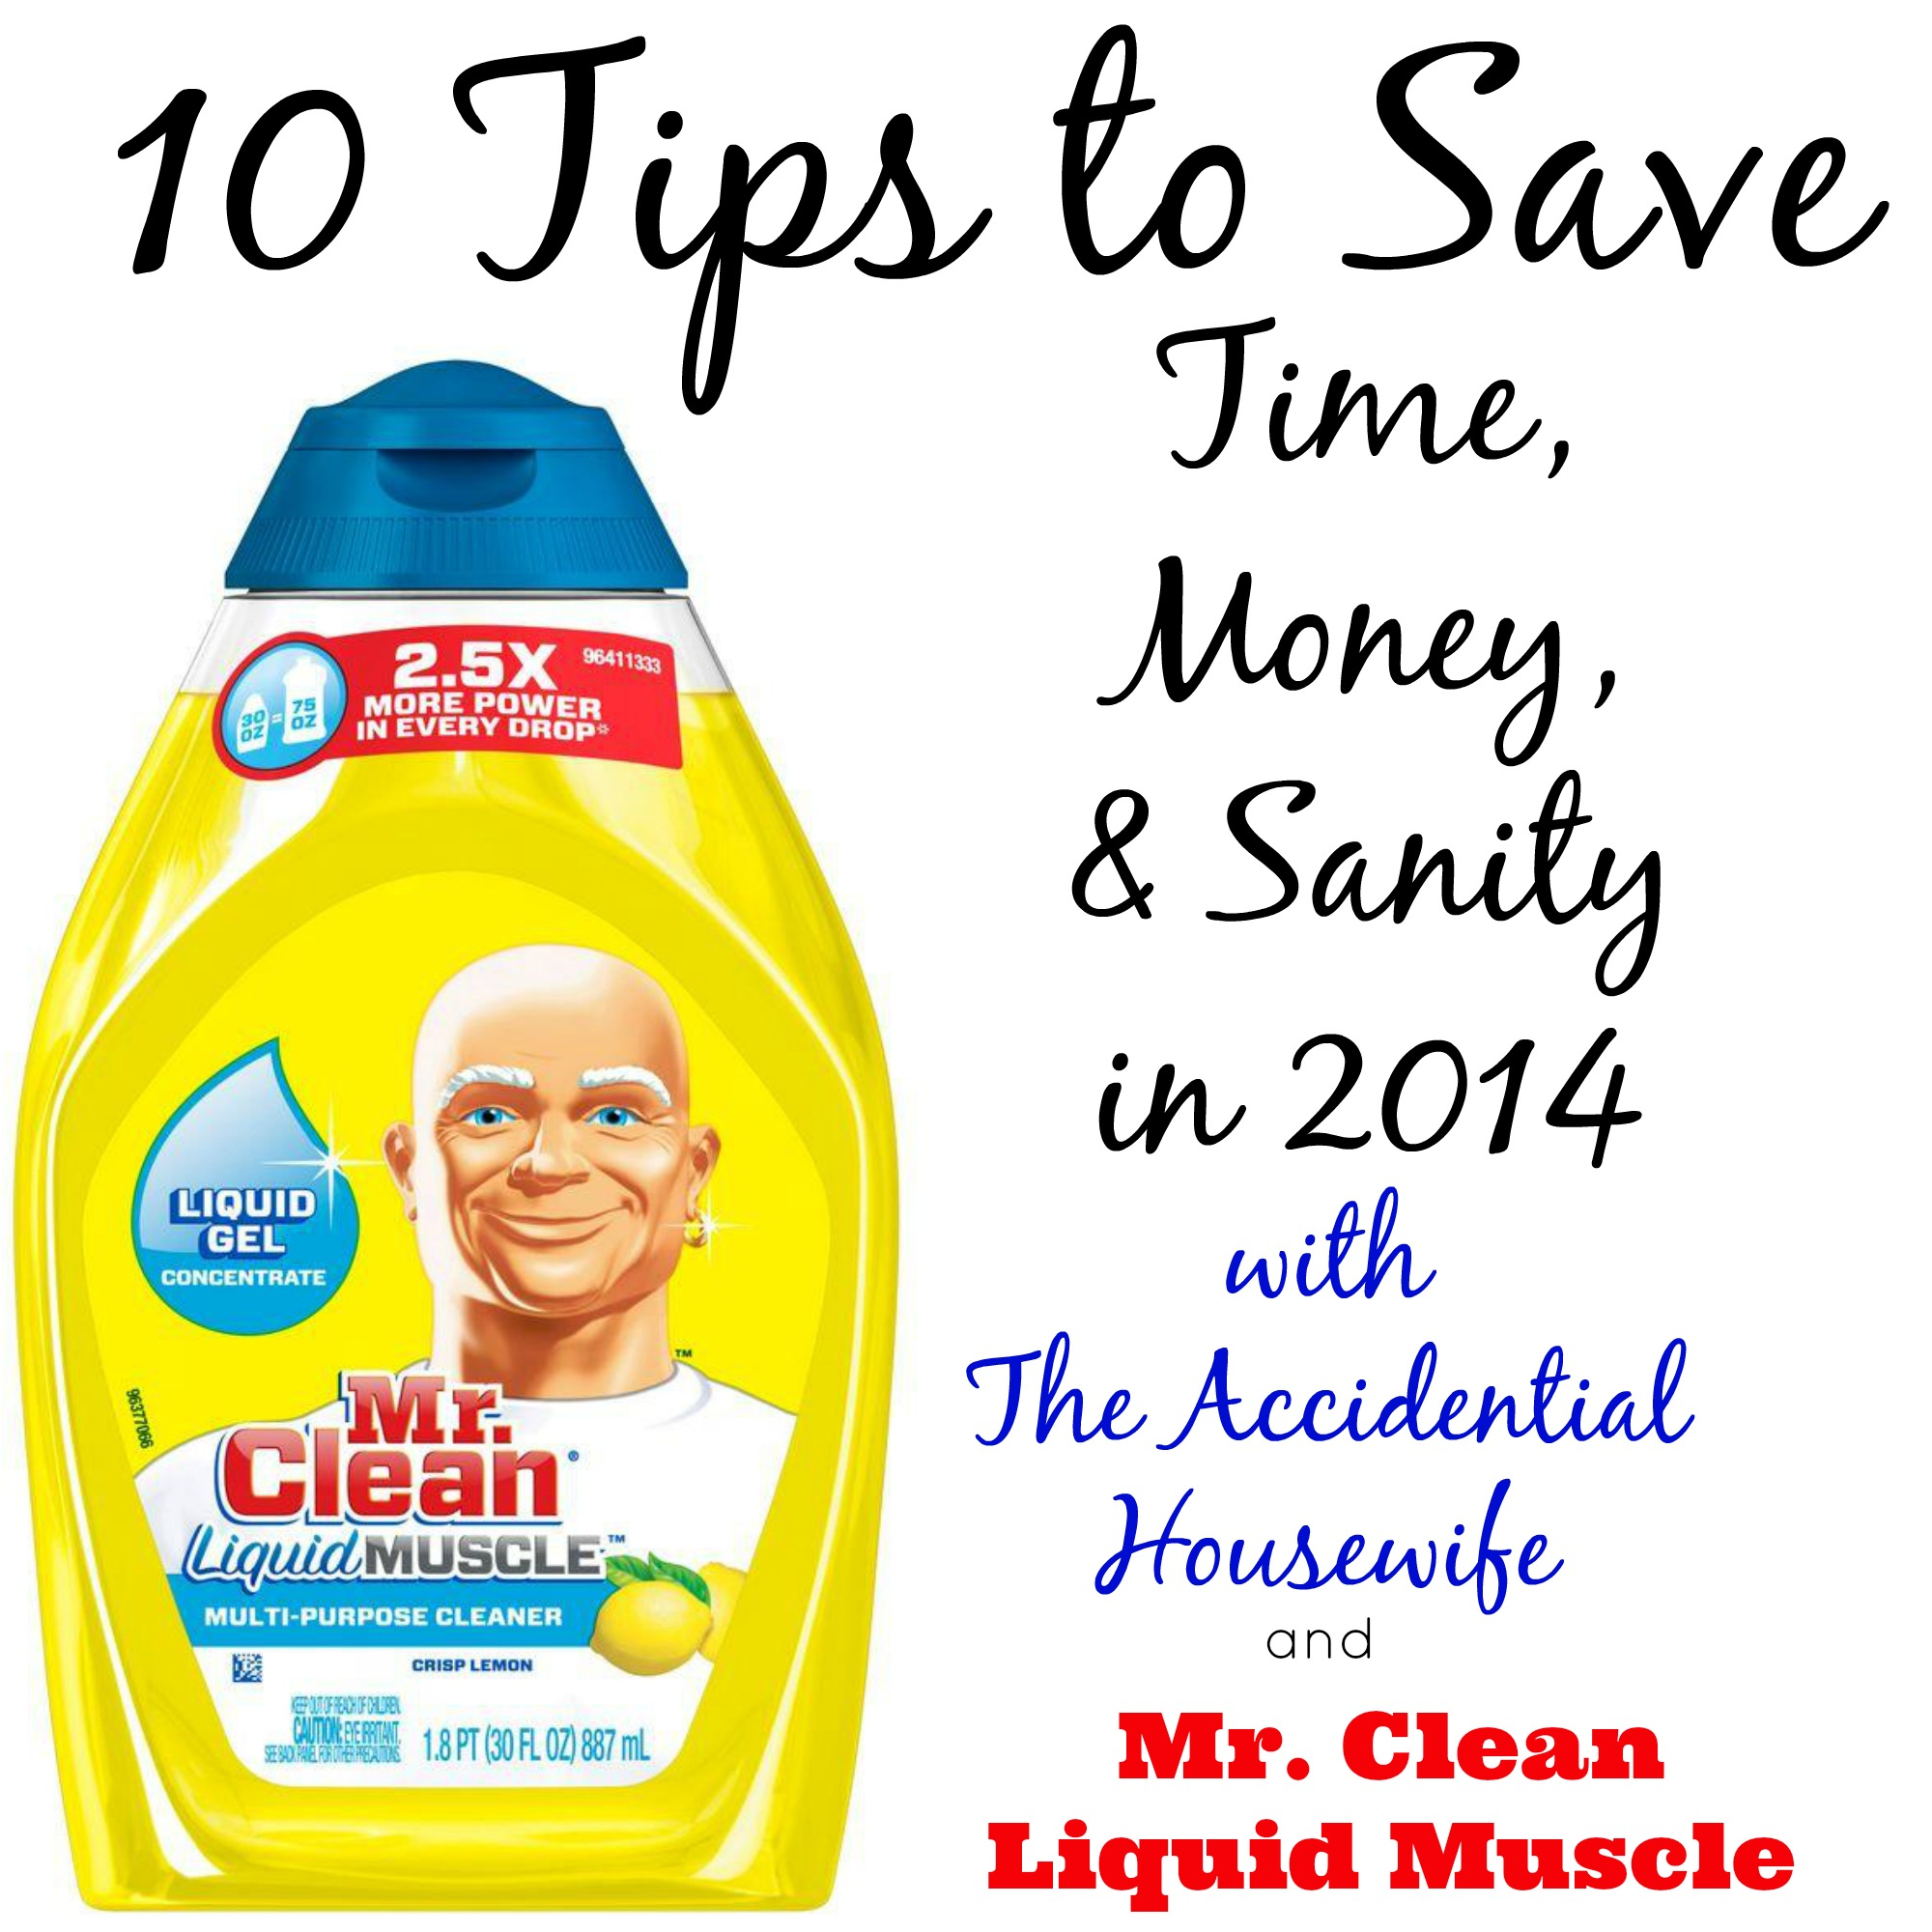 10 Tips to Save Time, Money and Sanity in 2014